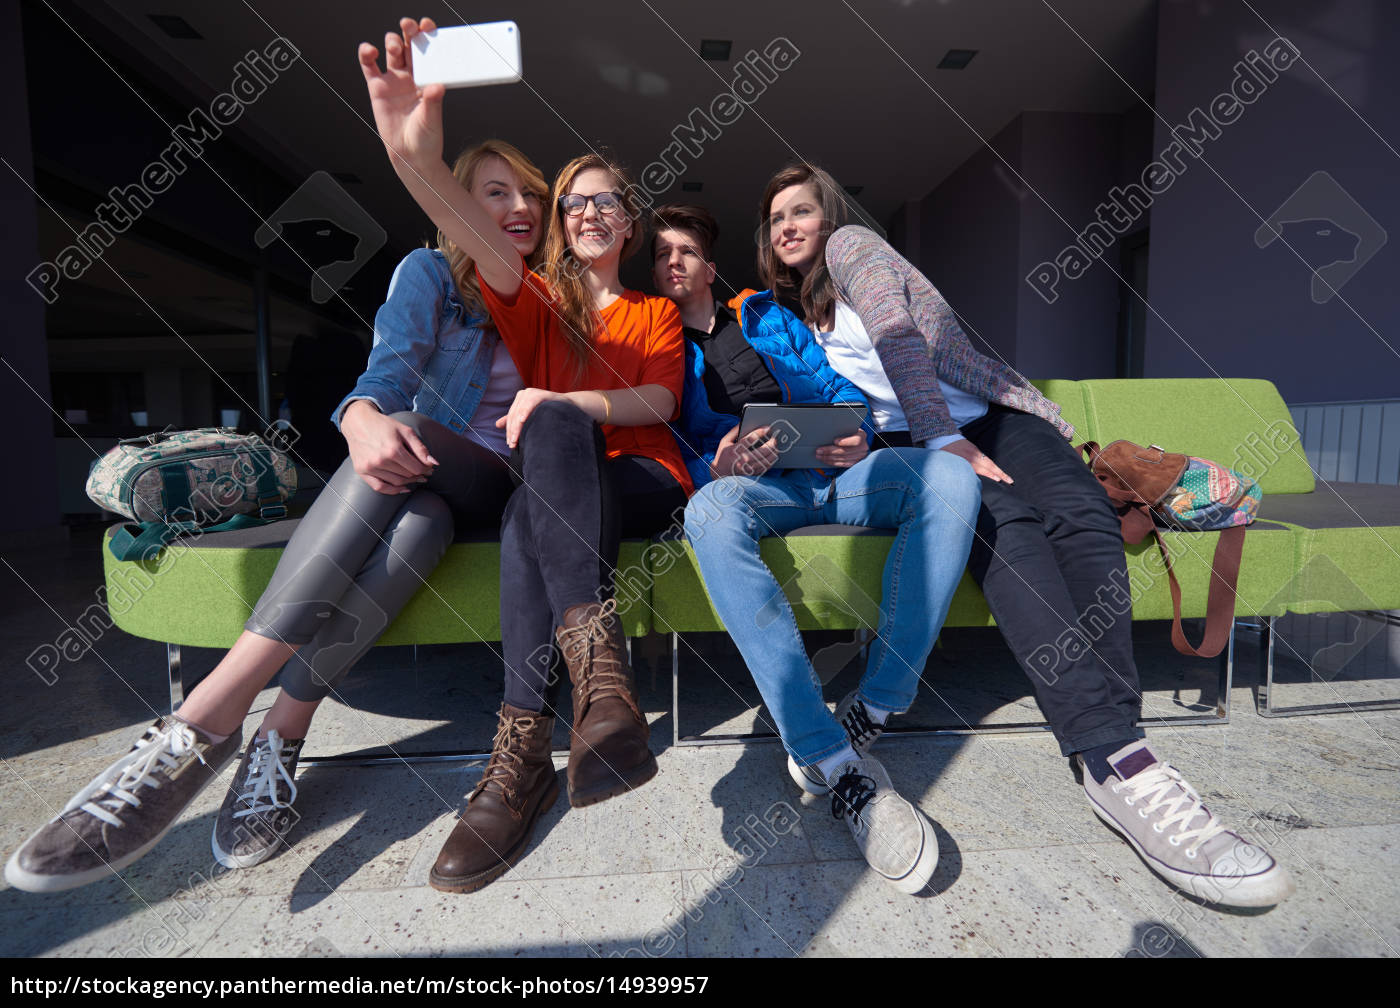 students, group, taking, selfie - 14939957